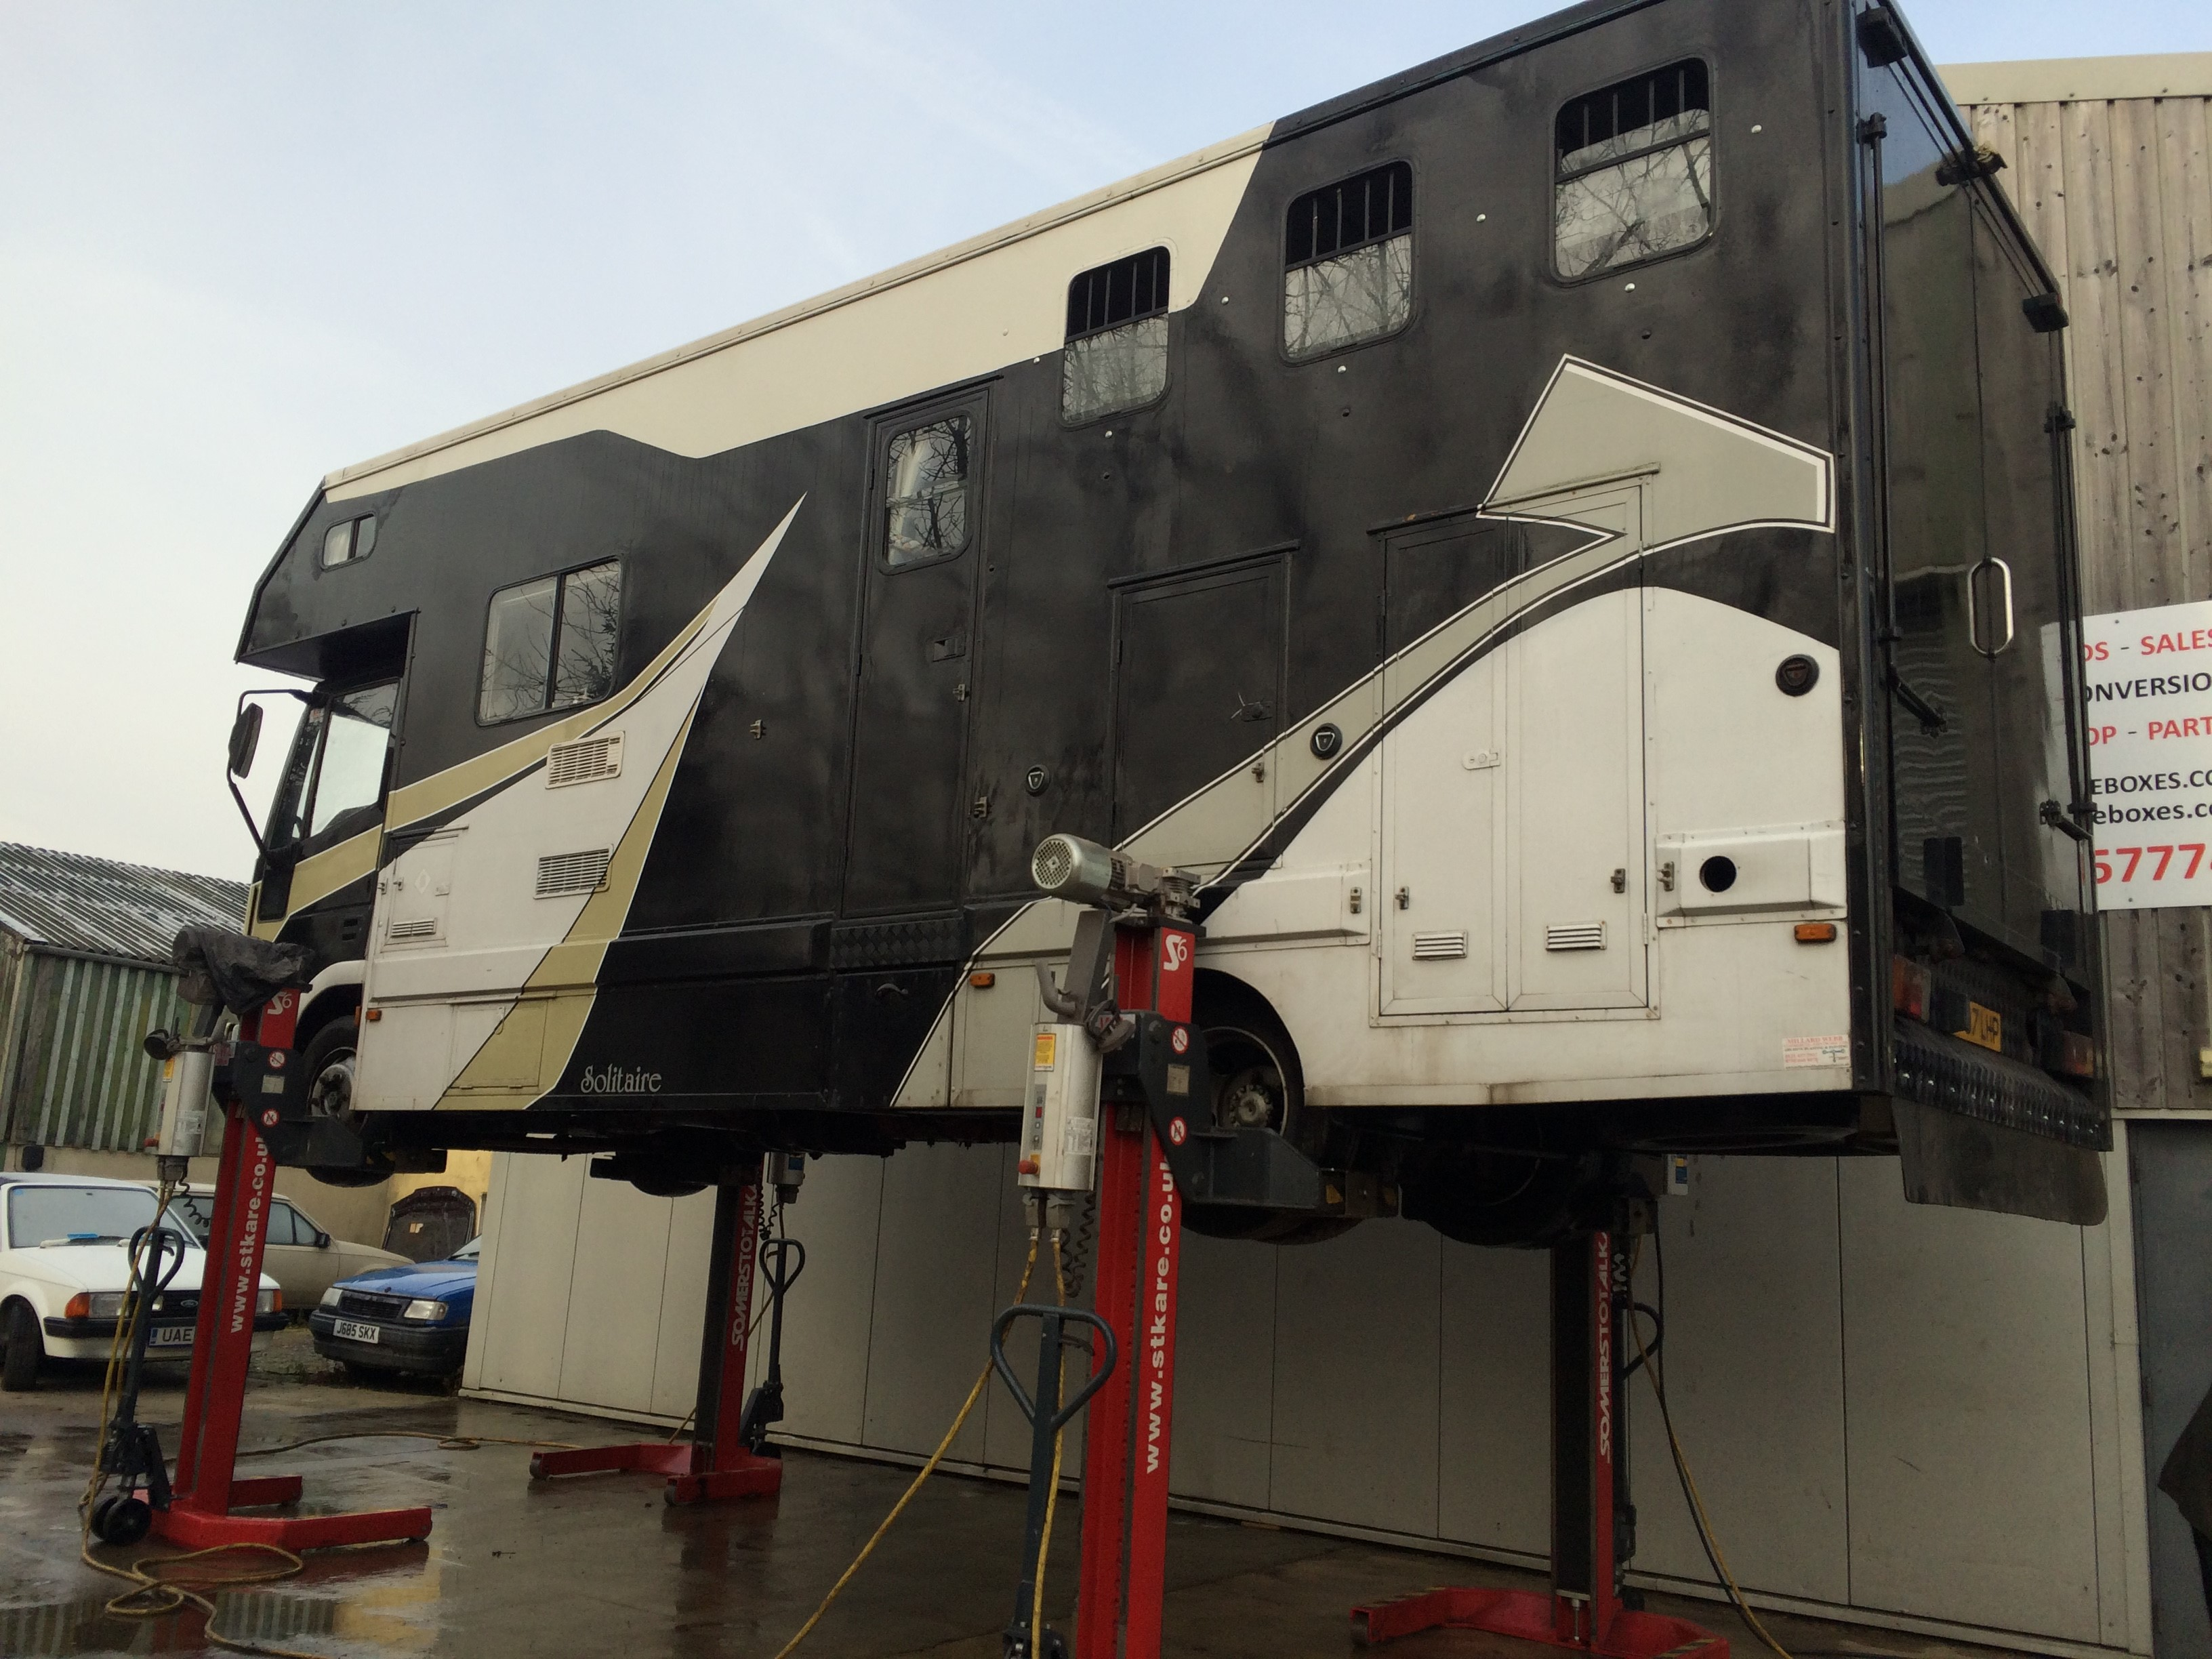 Horsebox being Serviced up on ramps